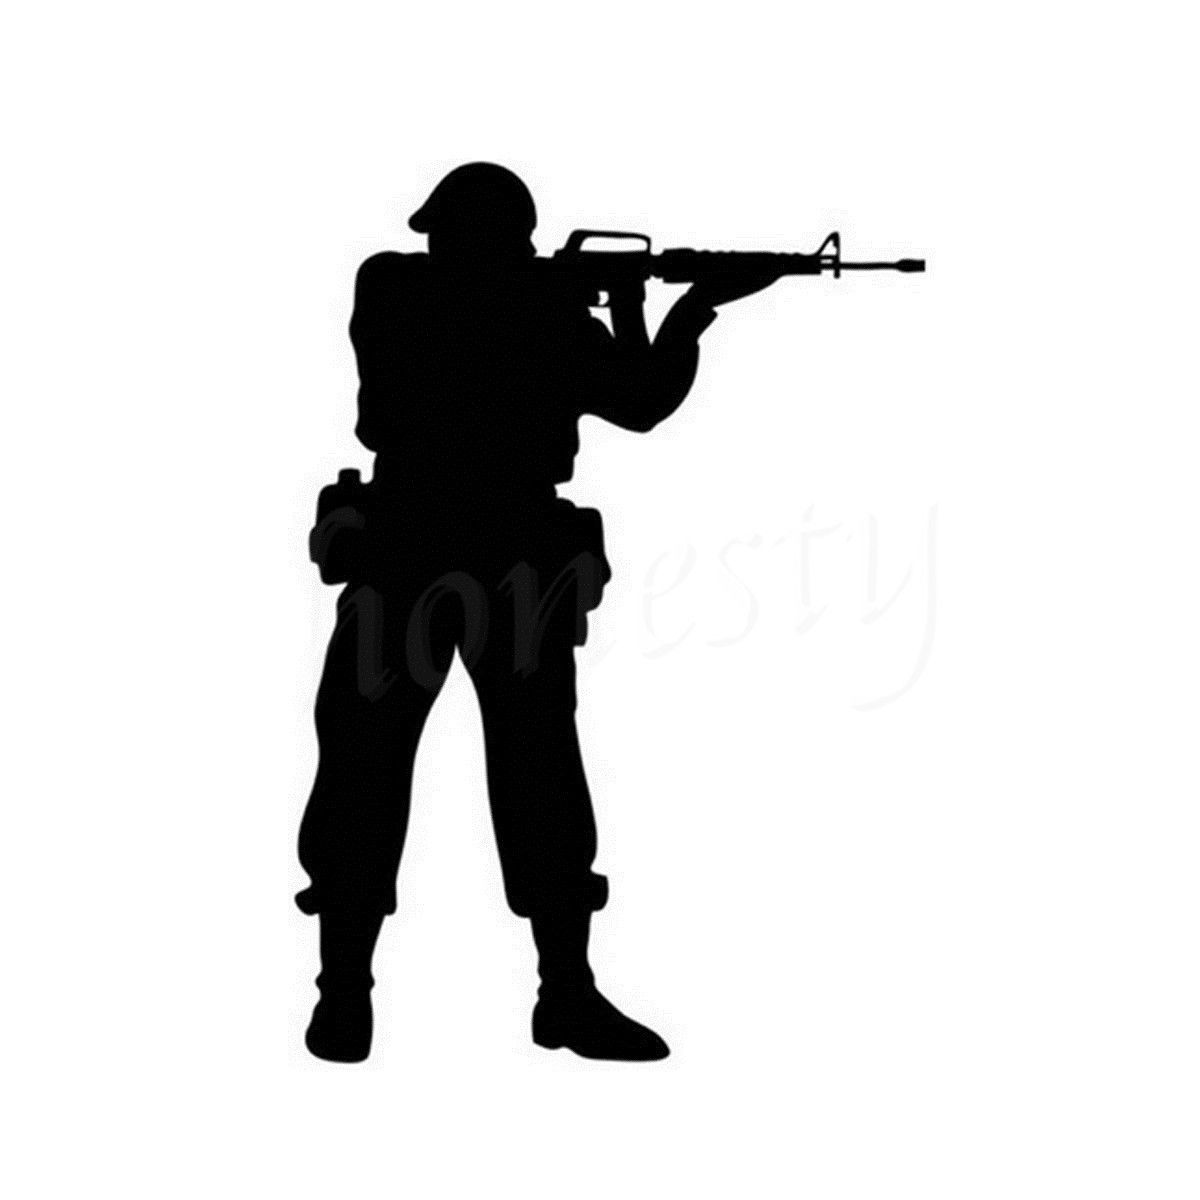 Shooting army wall home glass window door car sticker laptop truck motorcycle vinyl black decal sticker decor gift 11 5cmx16 3cm in car stickers from